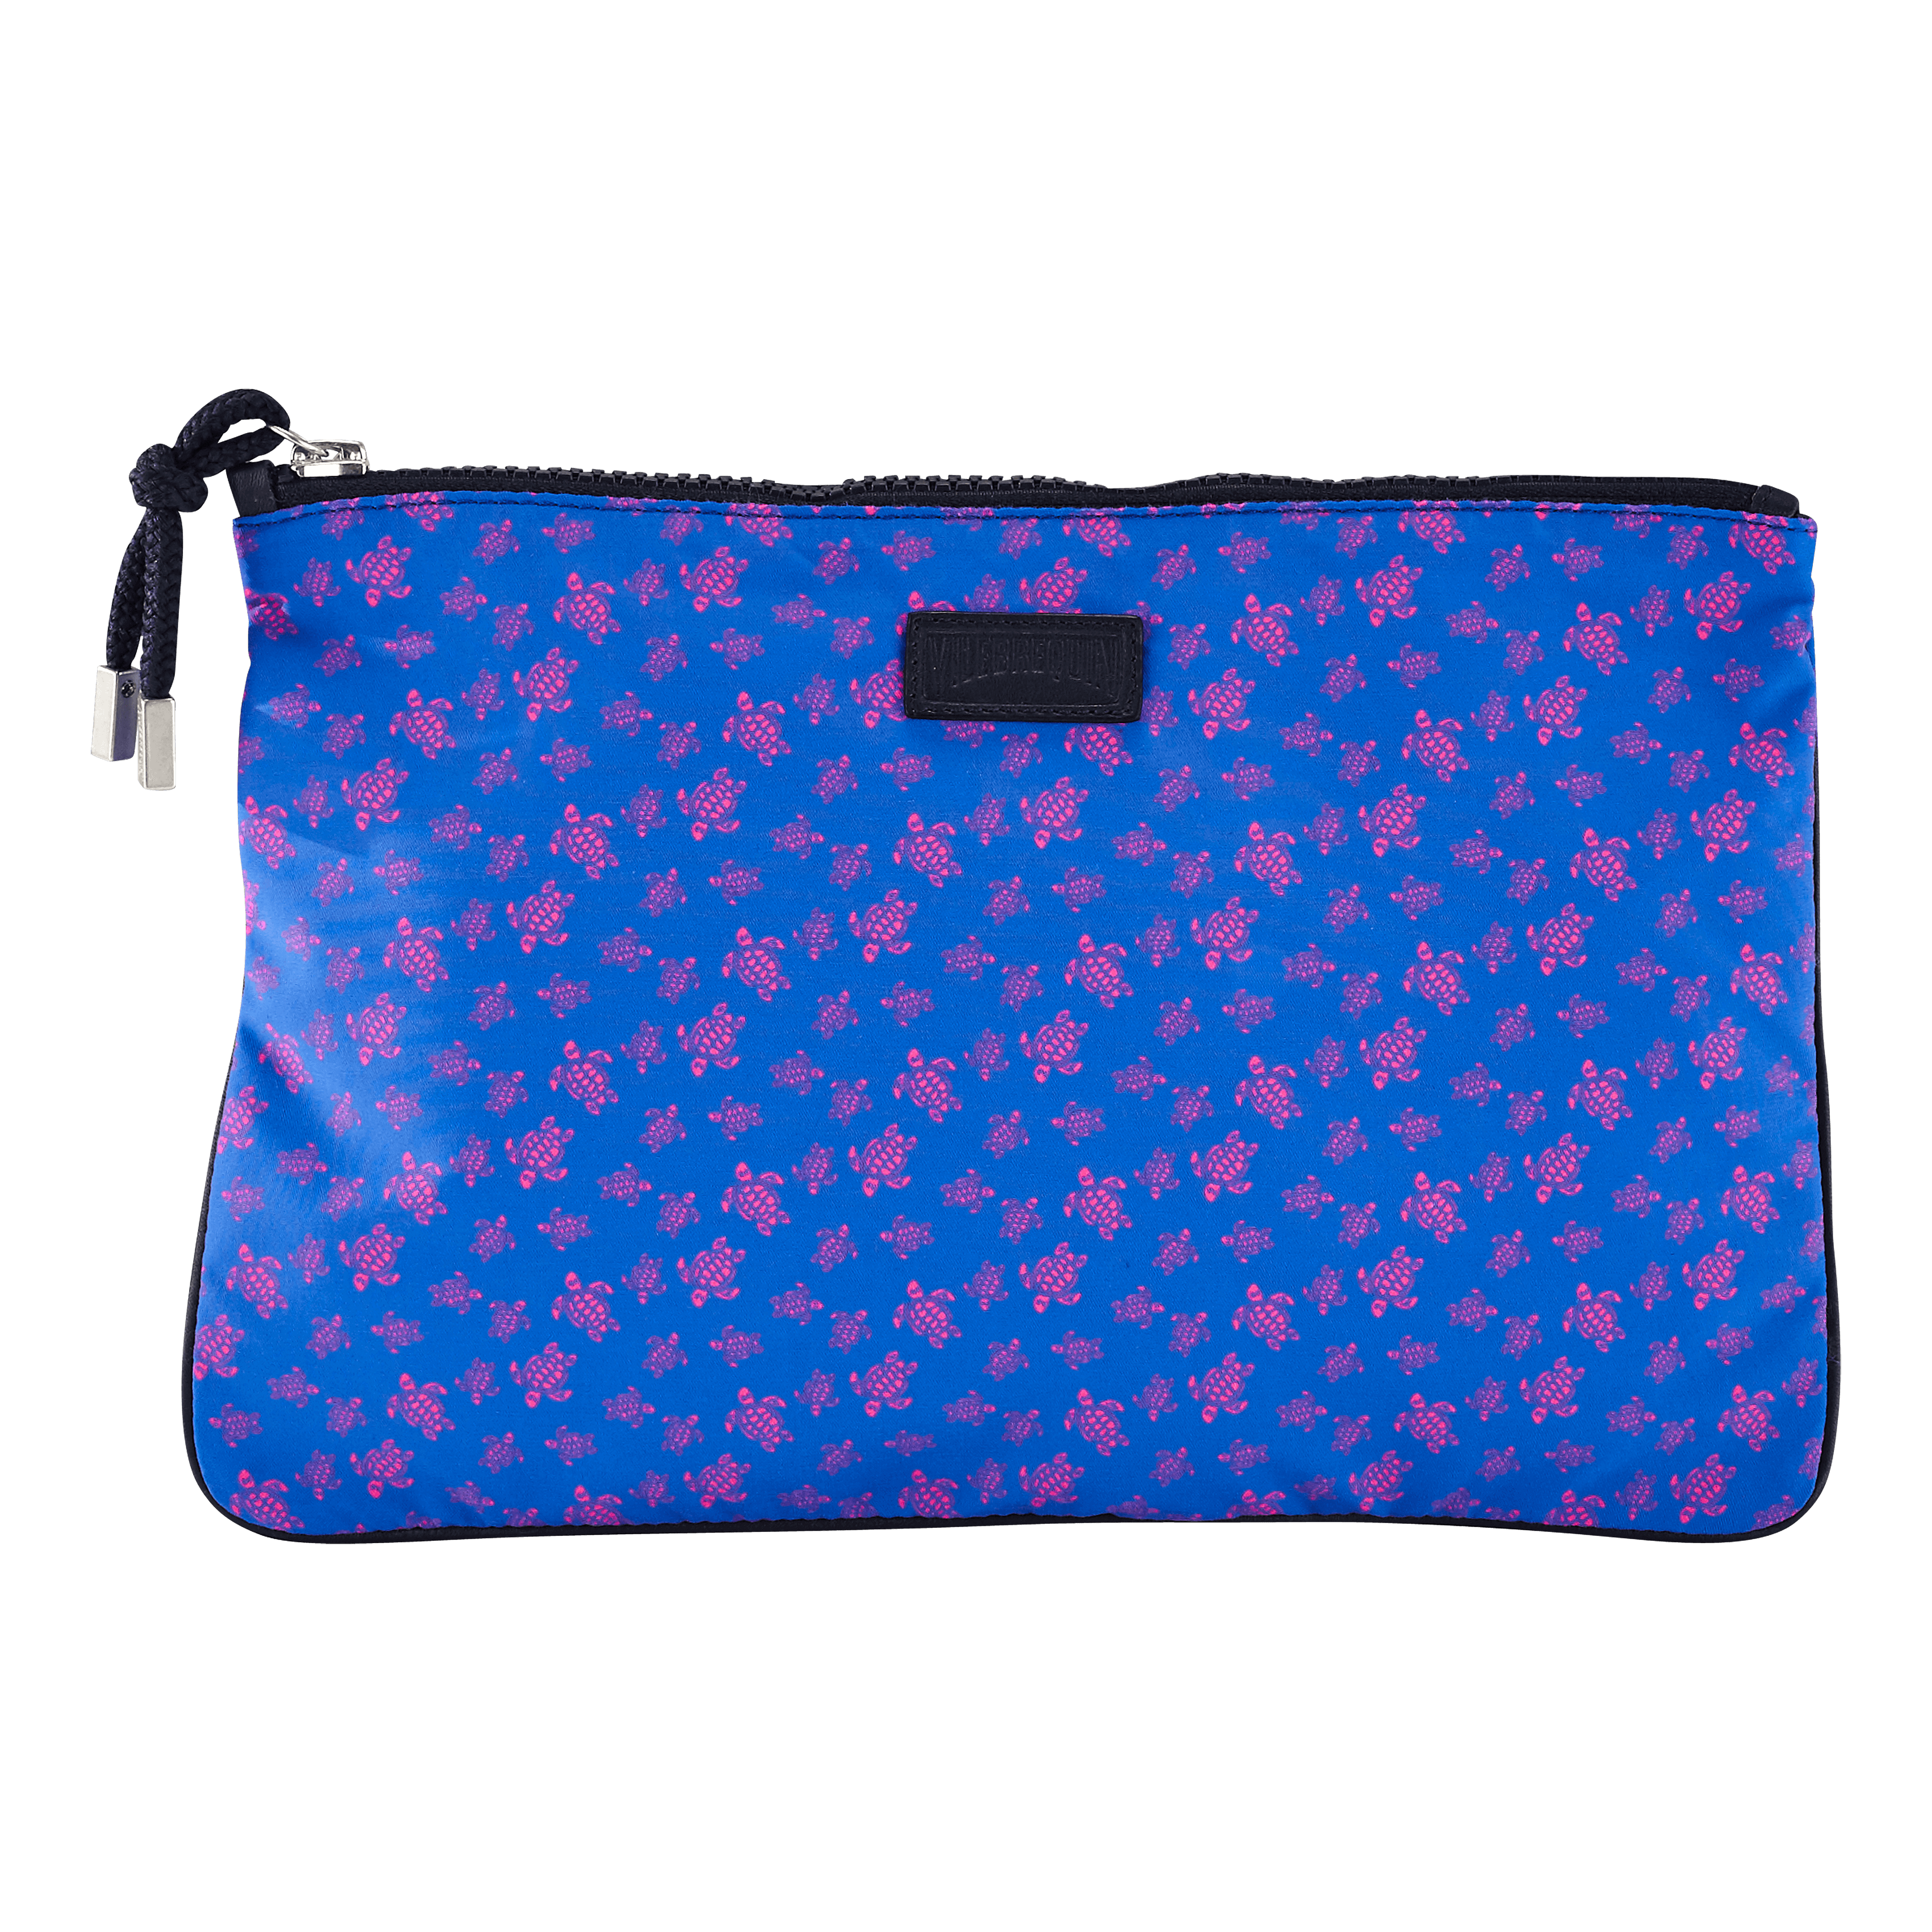 Vilebrequin Beach Pouch Micro Ronde Des Tortues In Blue